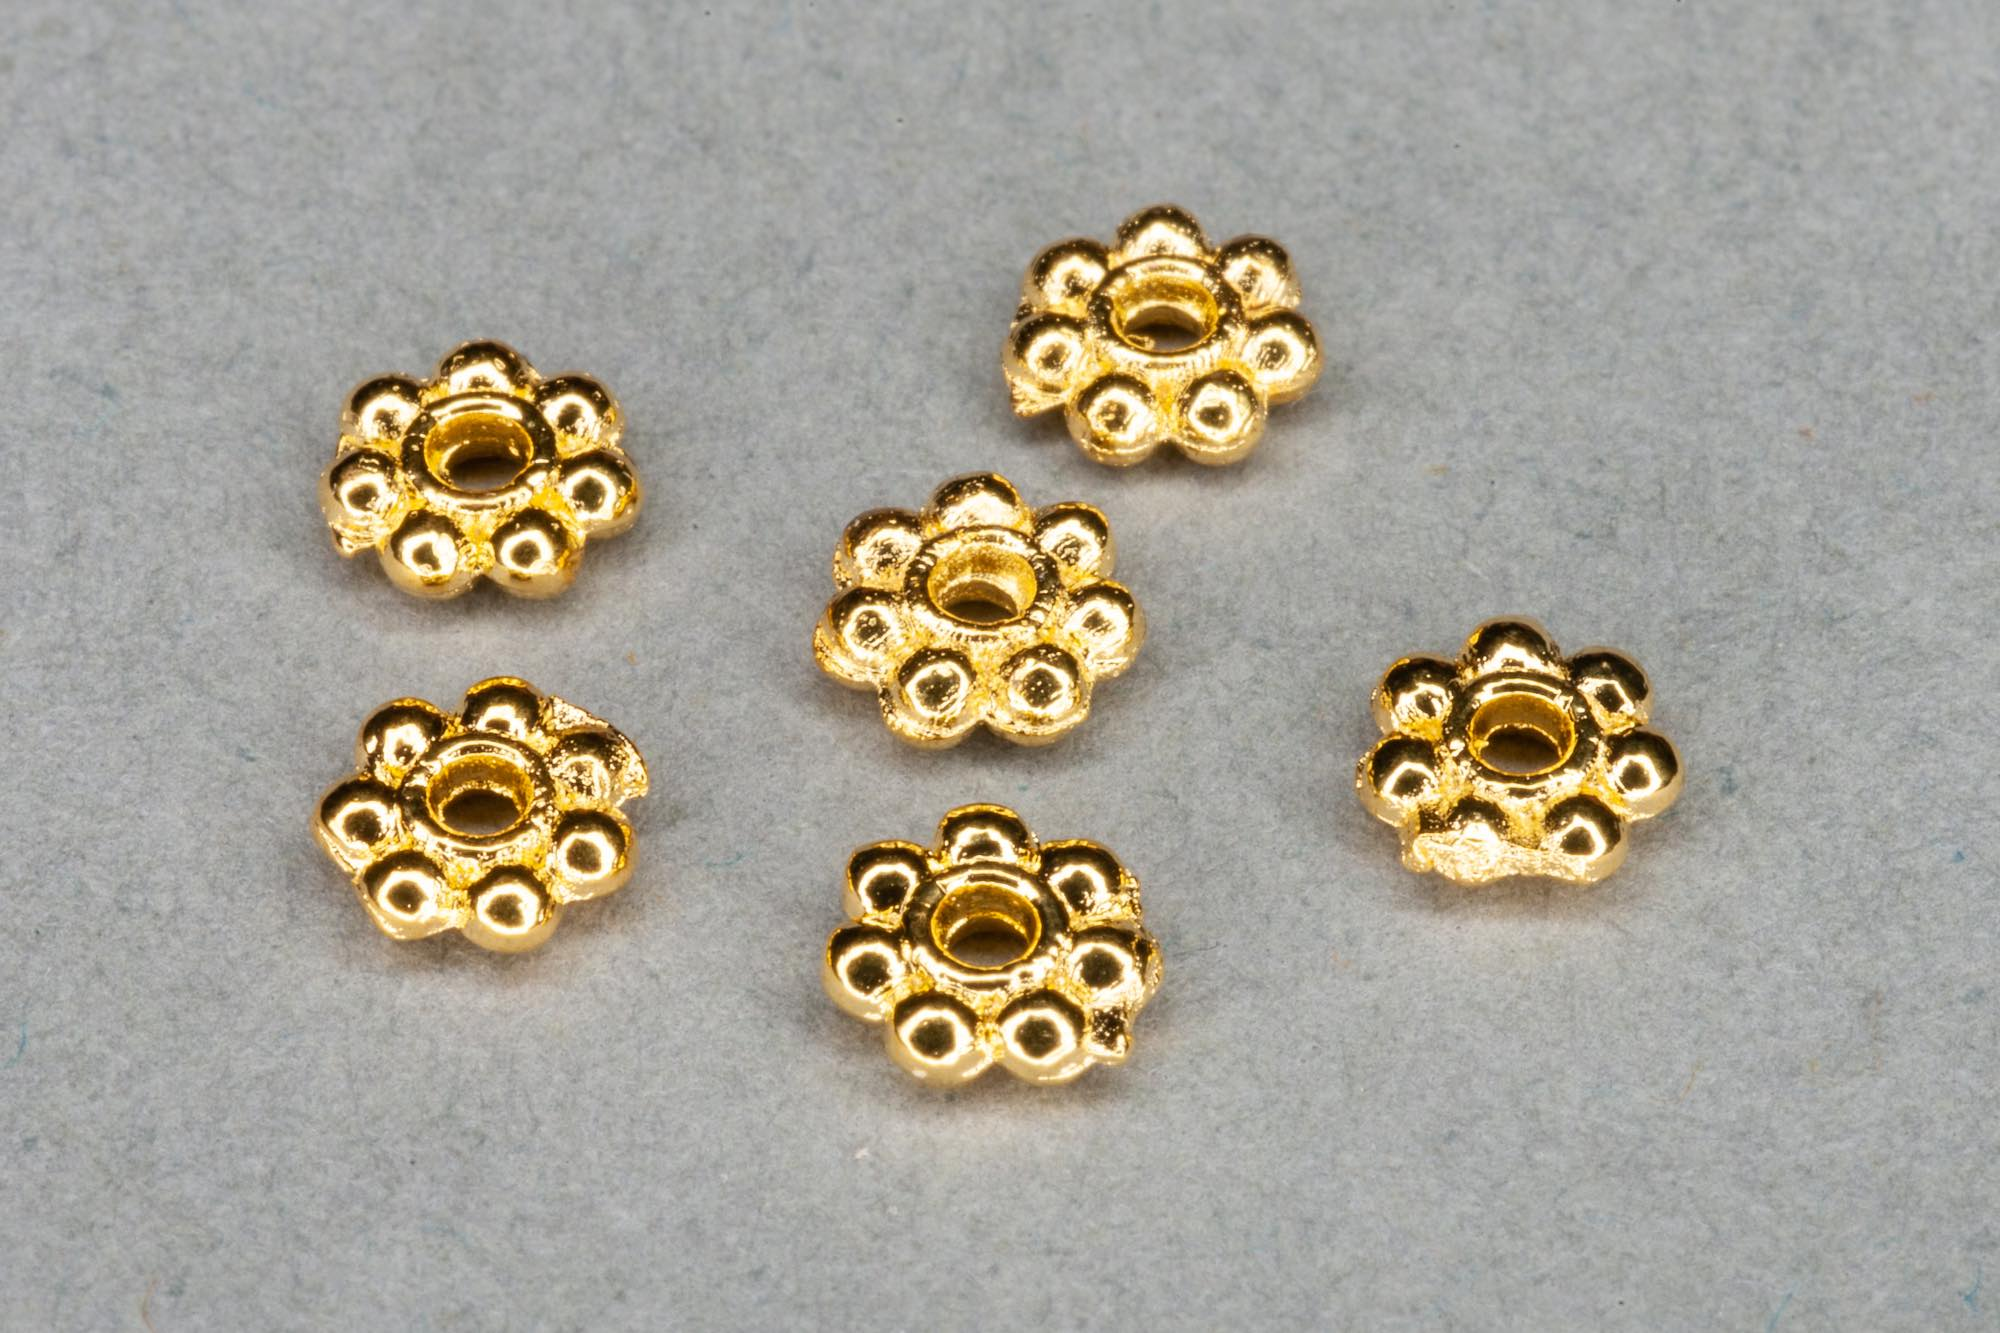 Bright Gold Plated Tiny Flat Decorative Spacer Bead 3x2mm, 0.8mm hole